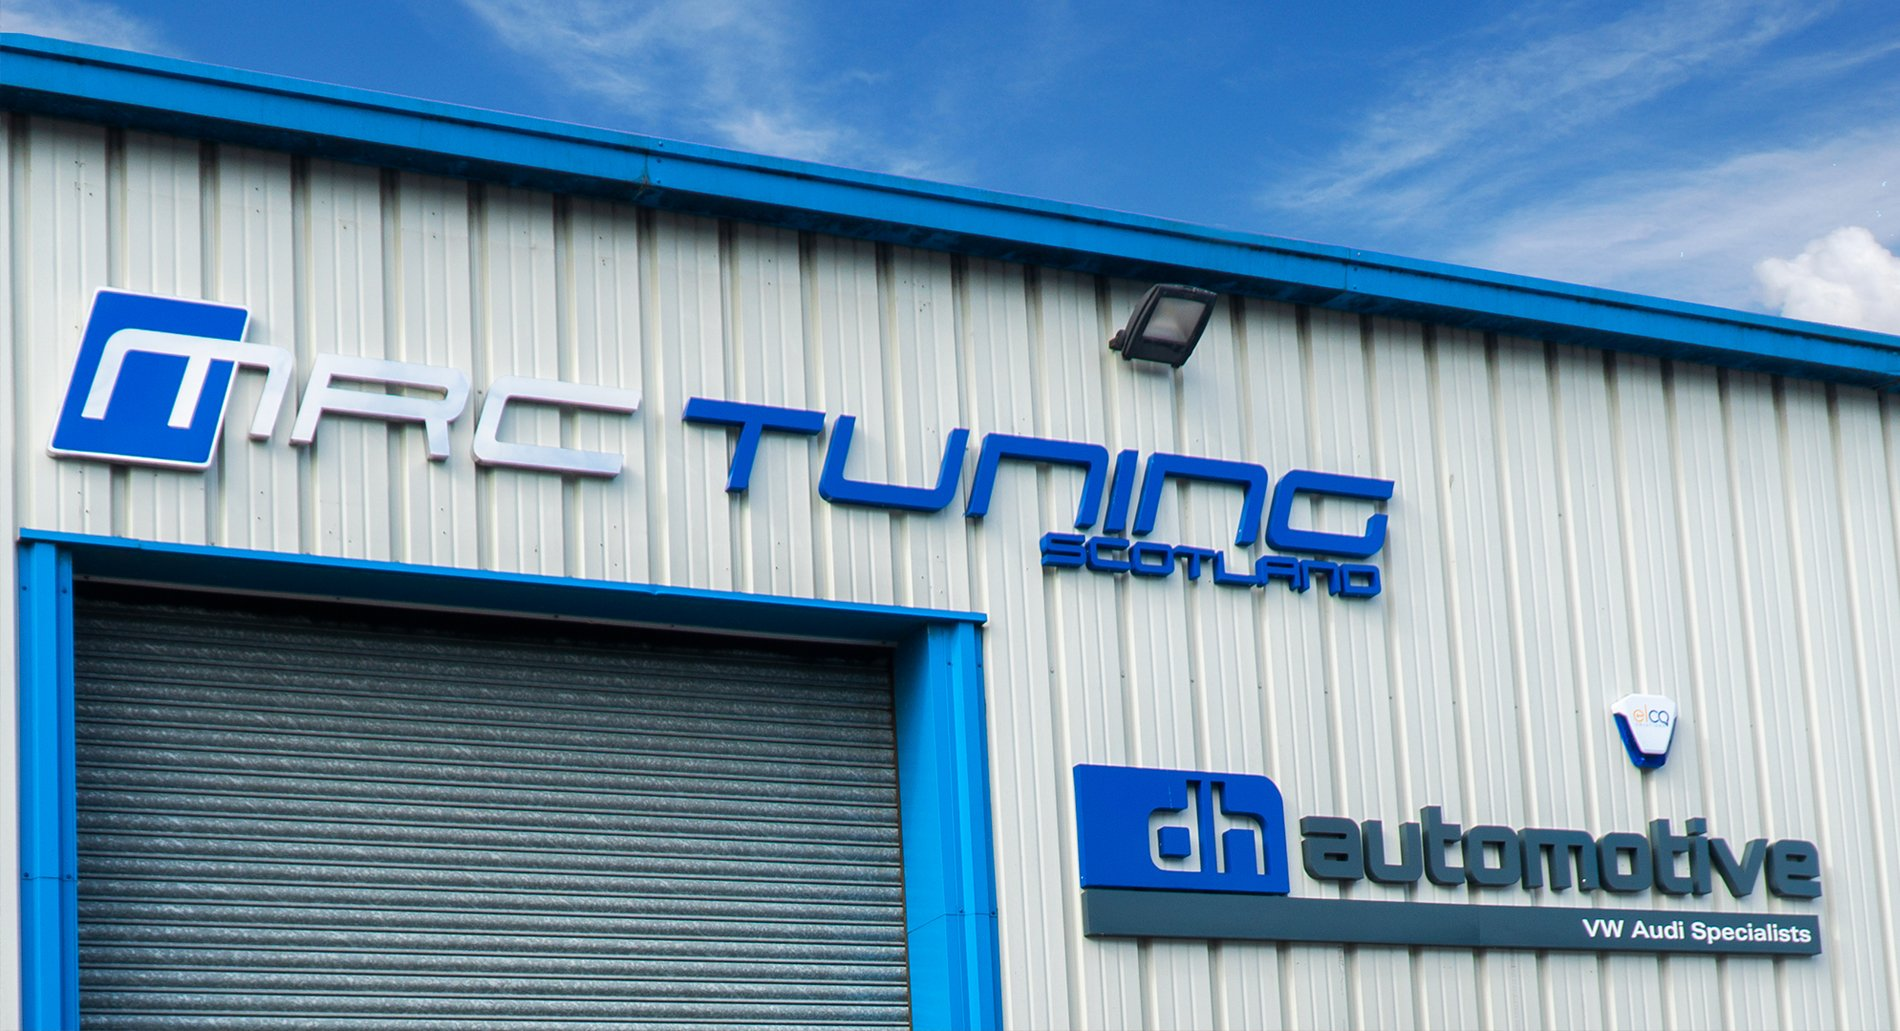 DS Graphics Scotland - Signage